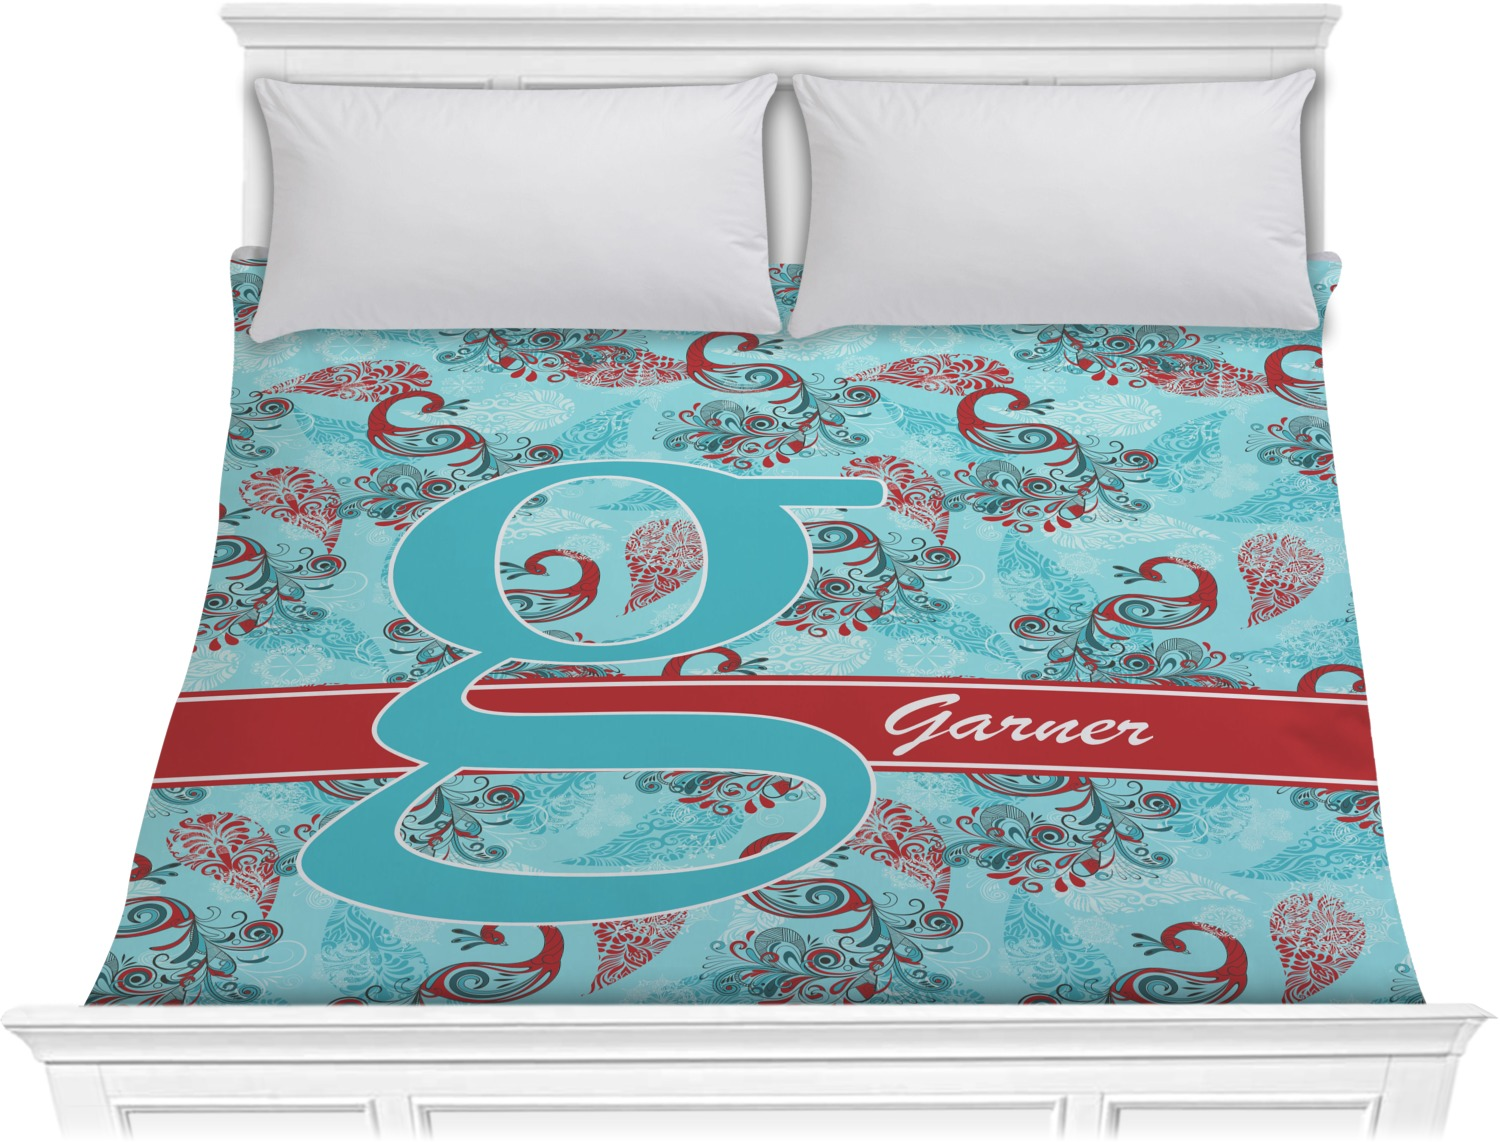 Peacock Comforter King Size: King (Personalized)